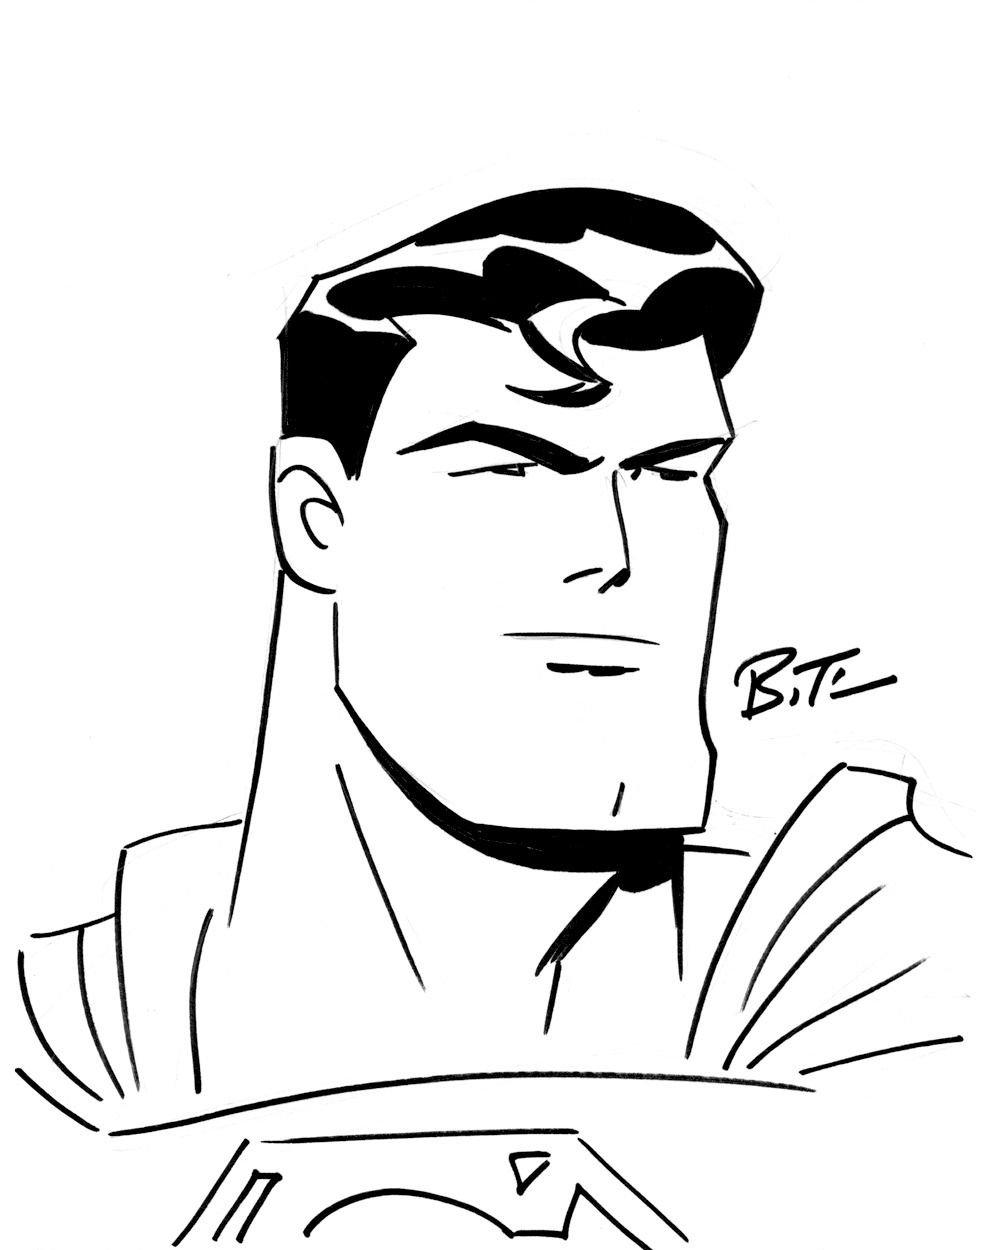 Superman by Bruce Timm | Superman | Pinterest | Bruce timm, Comic ...